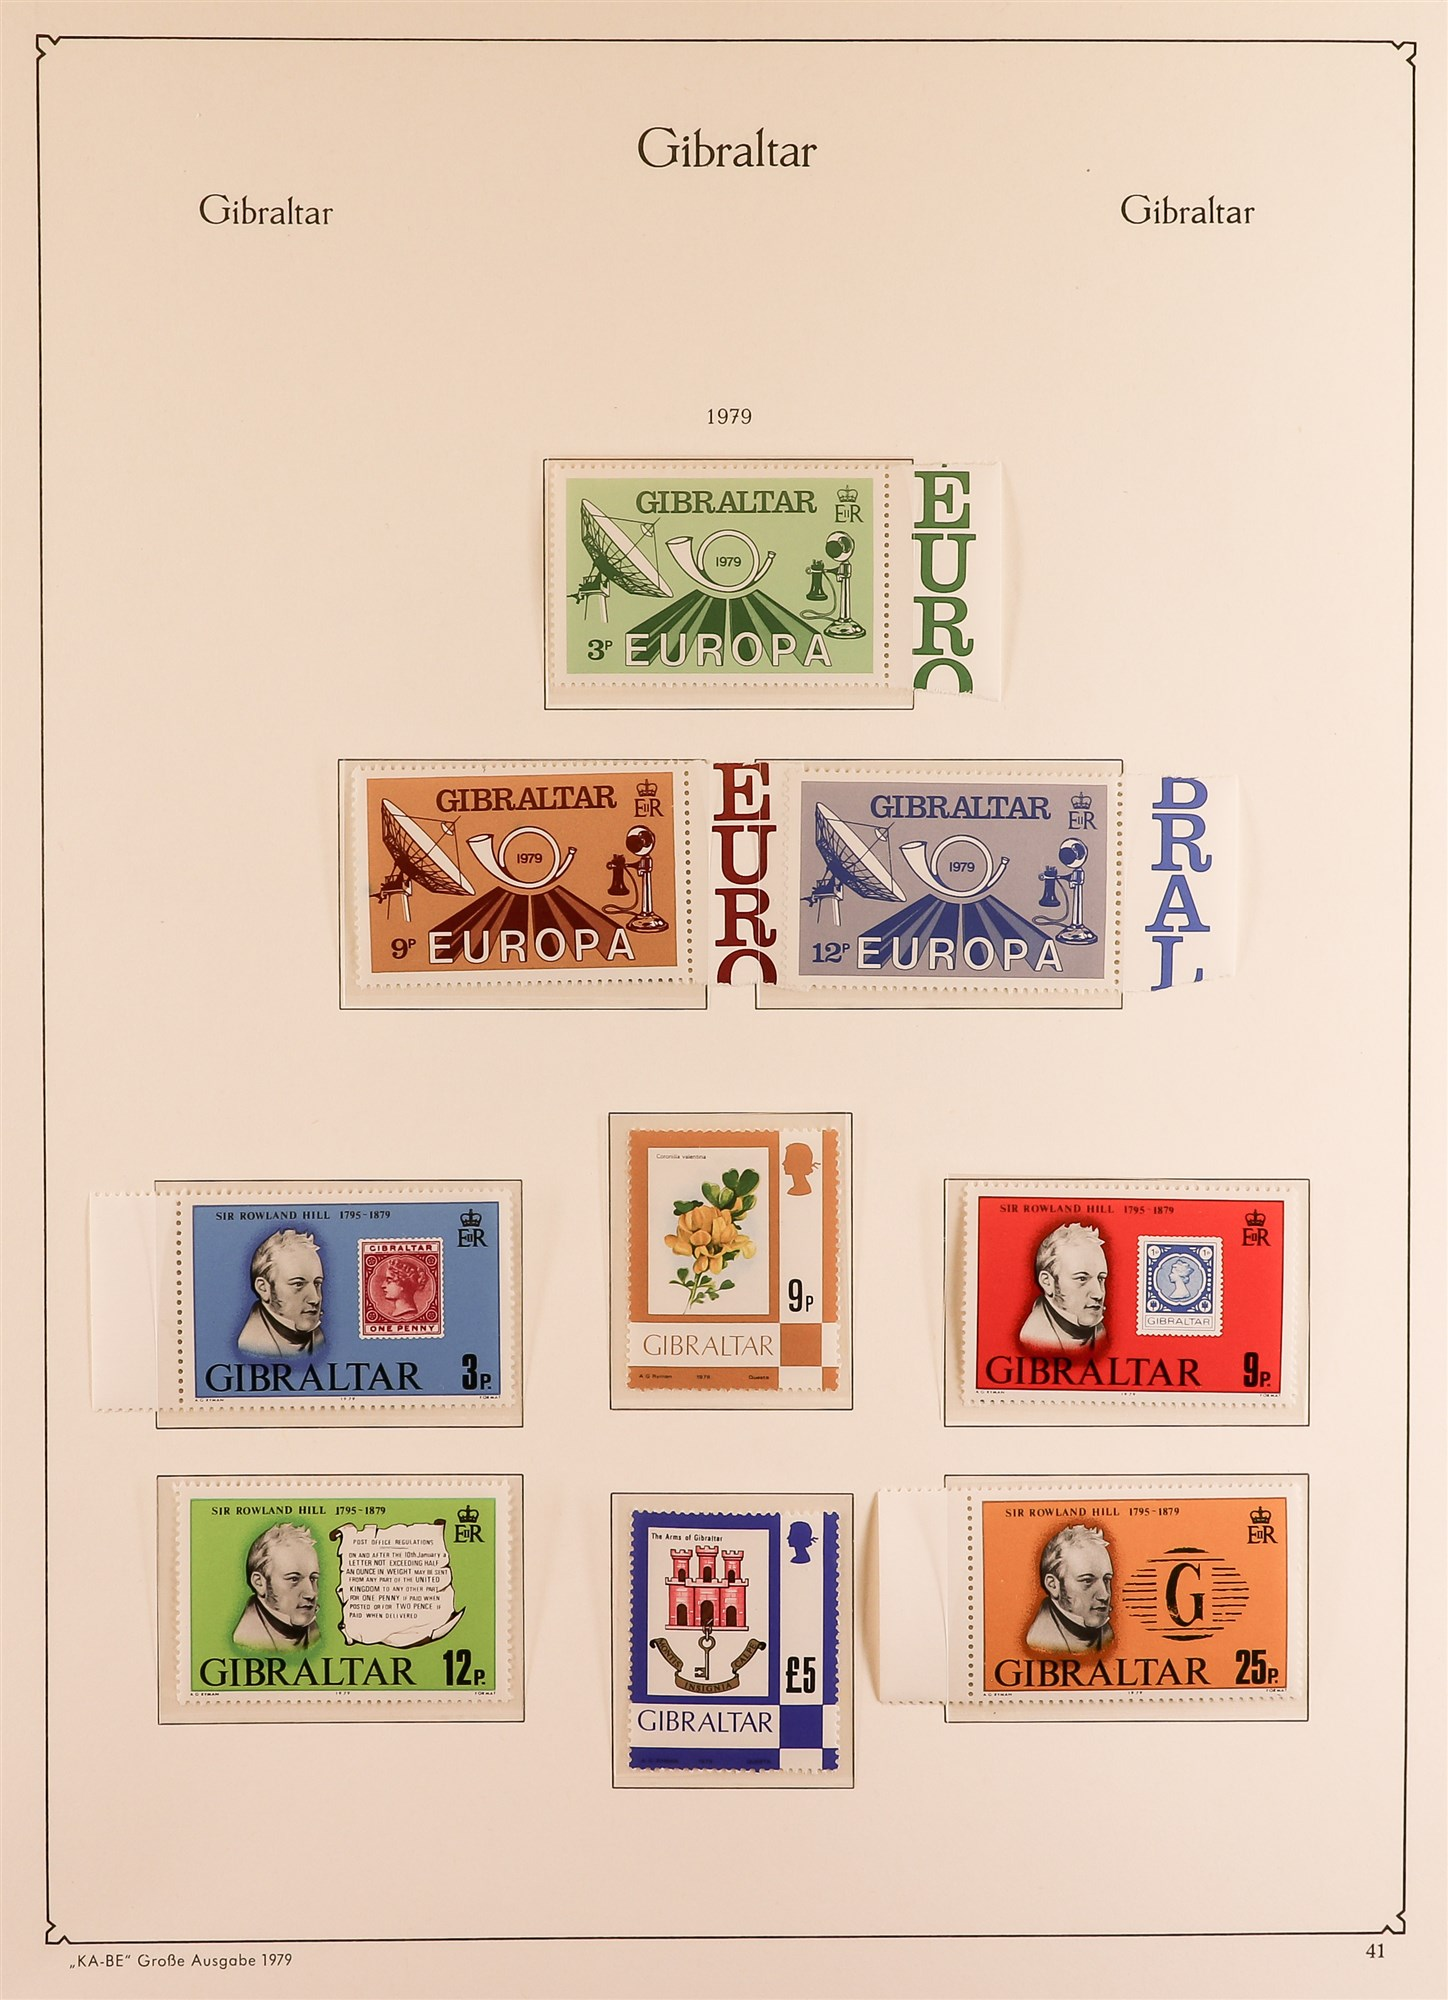 GIBRALTAR 1953-89 collection in a KA-BE album, mint incl. 1953-59 set, much of later is never hinged - Image 3 of 7